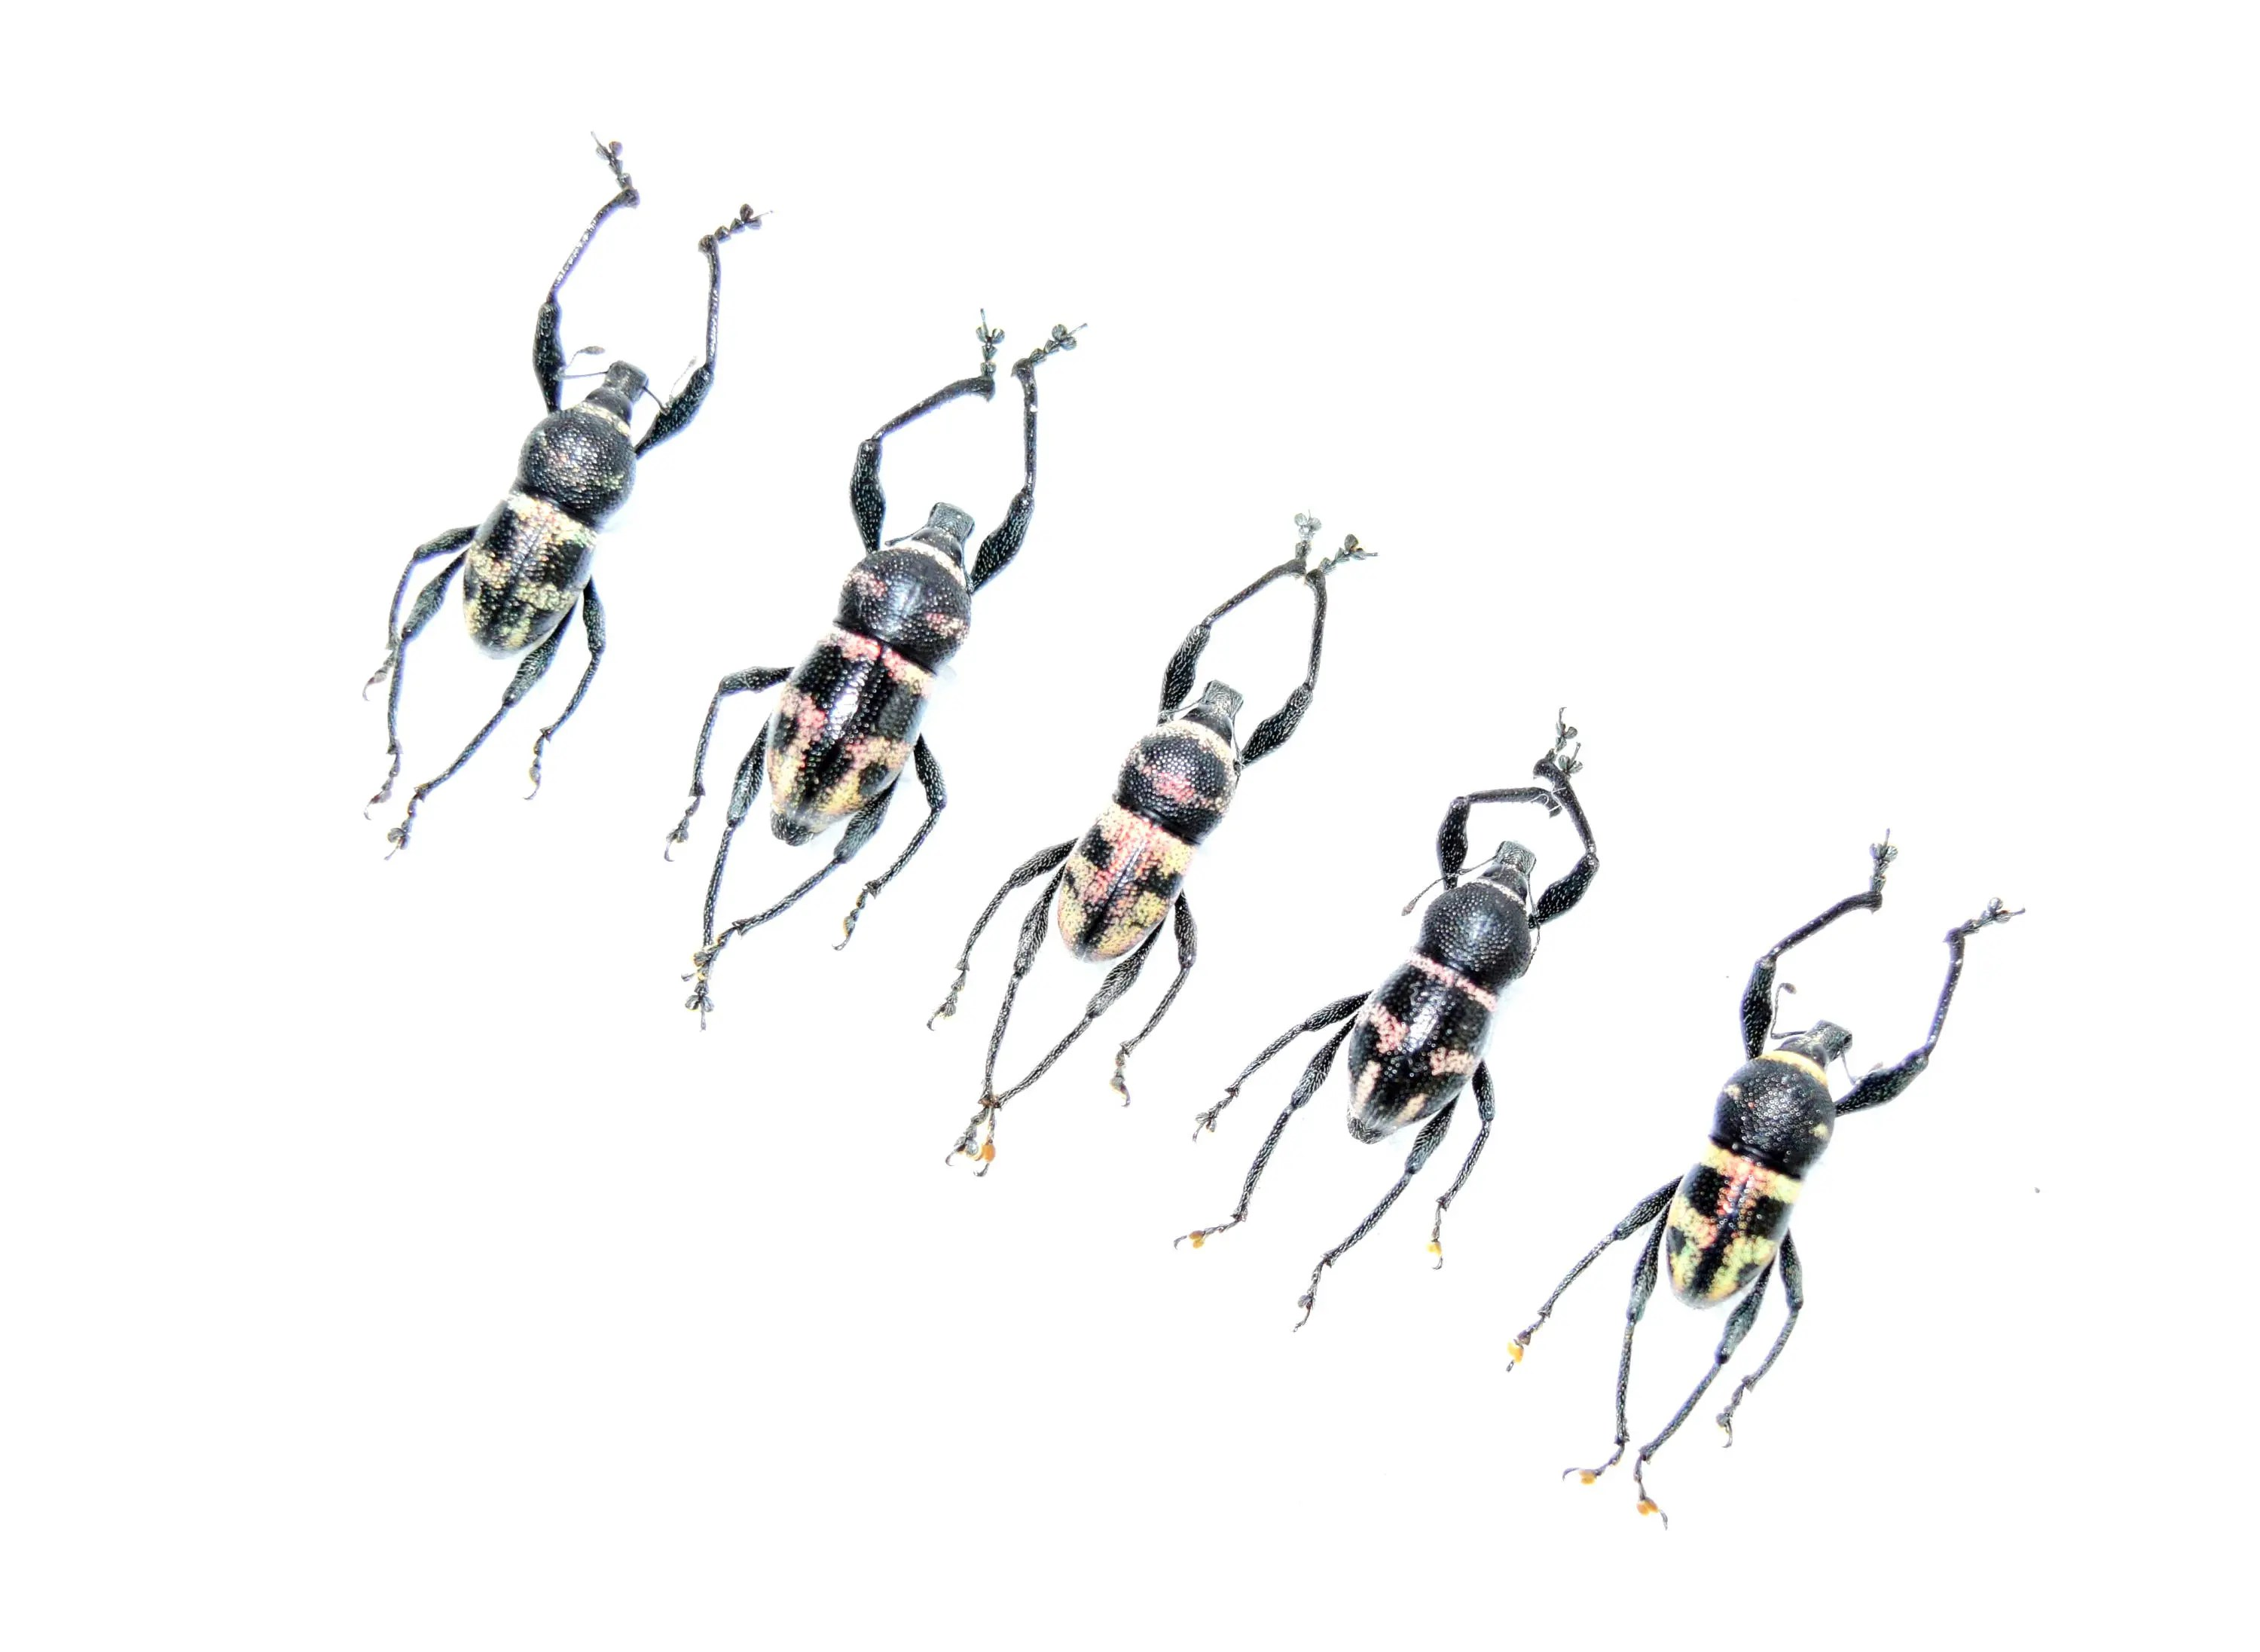 Pack Of 5 Real Insect Metapocyrtus Sp Real Beetle